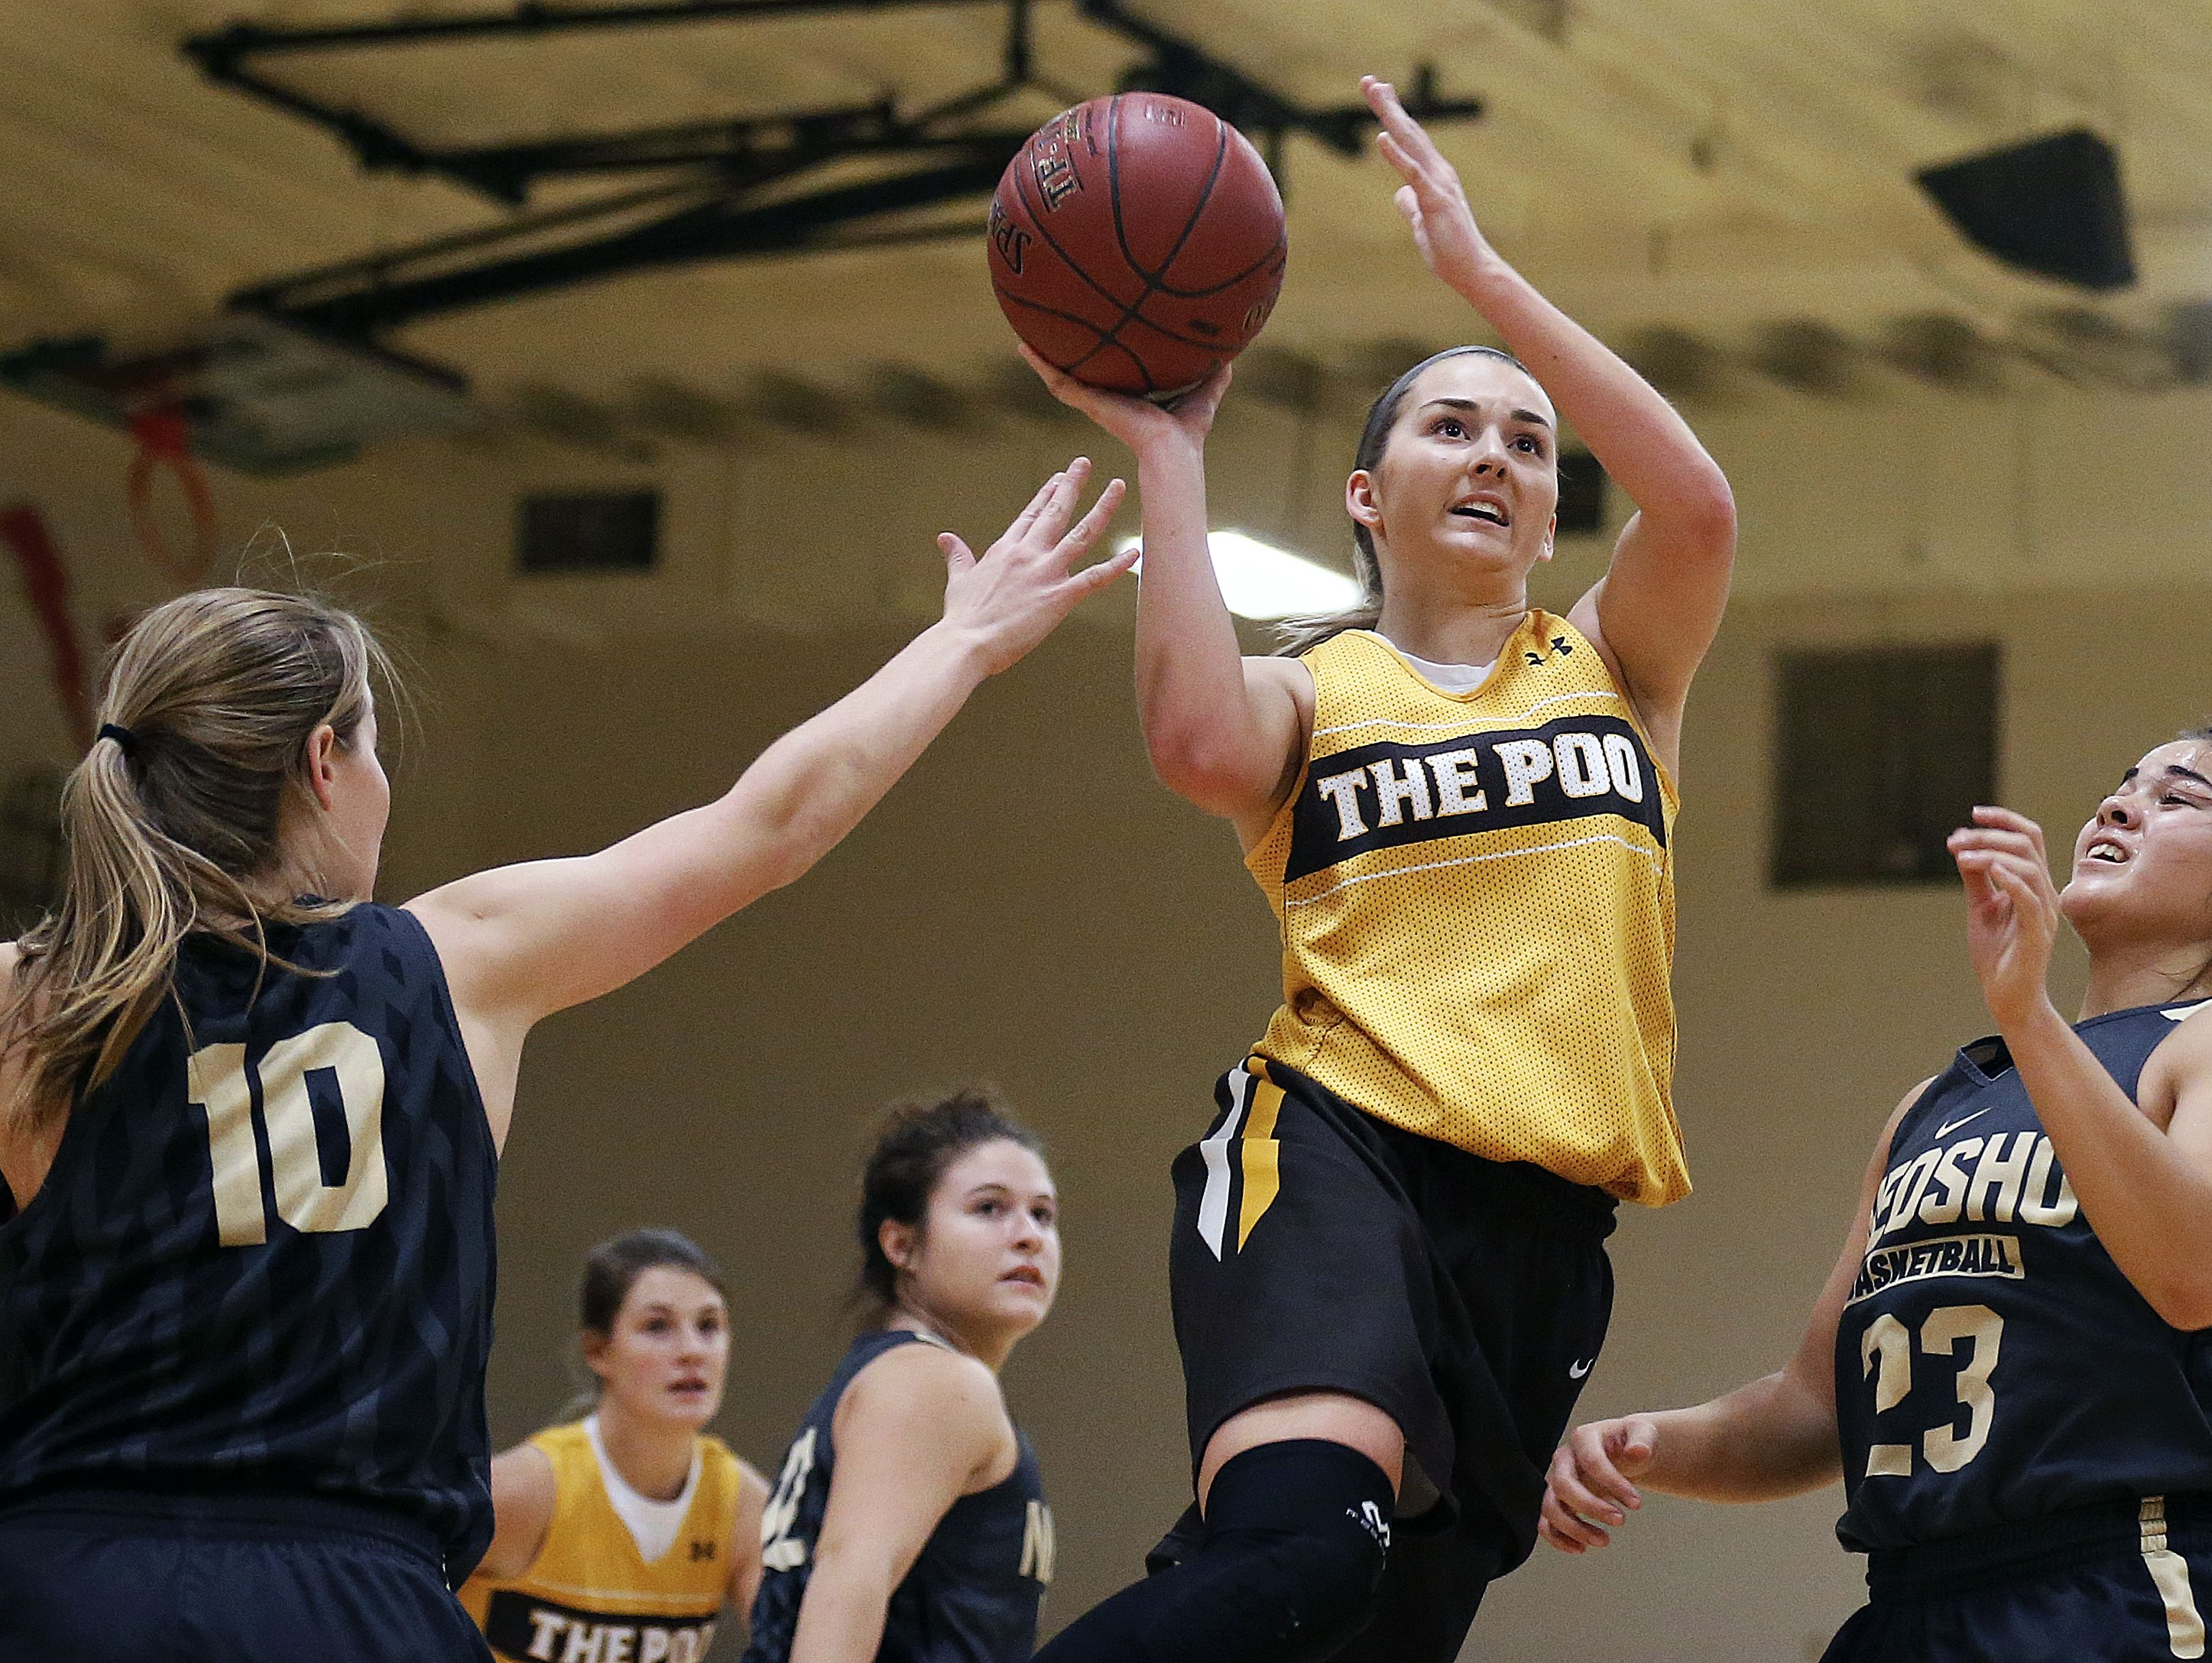 Kickapoo High School junior Jordan Wersinger (center) and her teammates will take part in a 48-hour high school basketball marathon at the 2016 Norm Stewart Classic in Columbia.